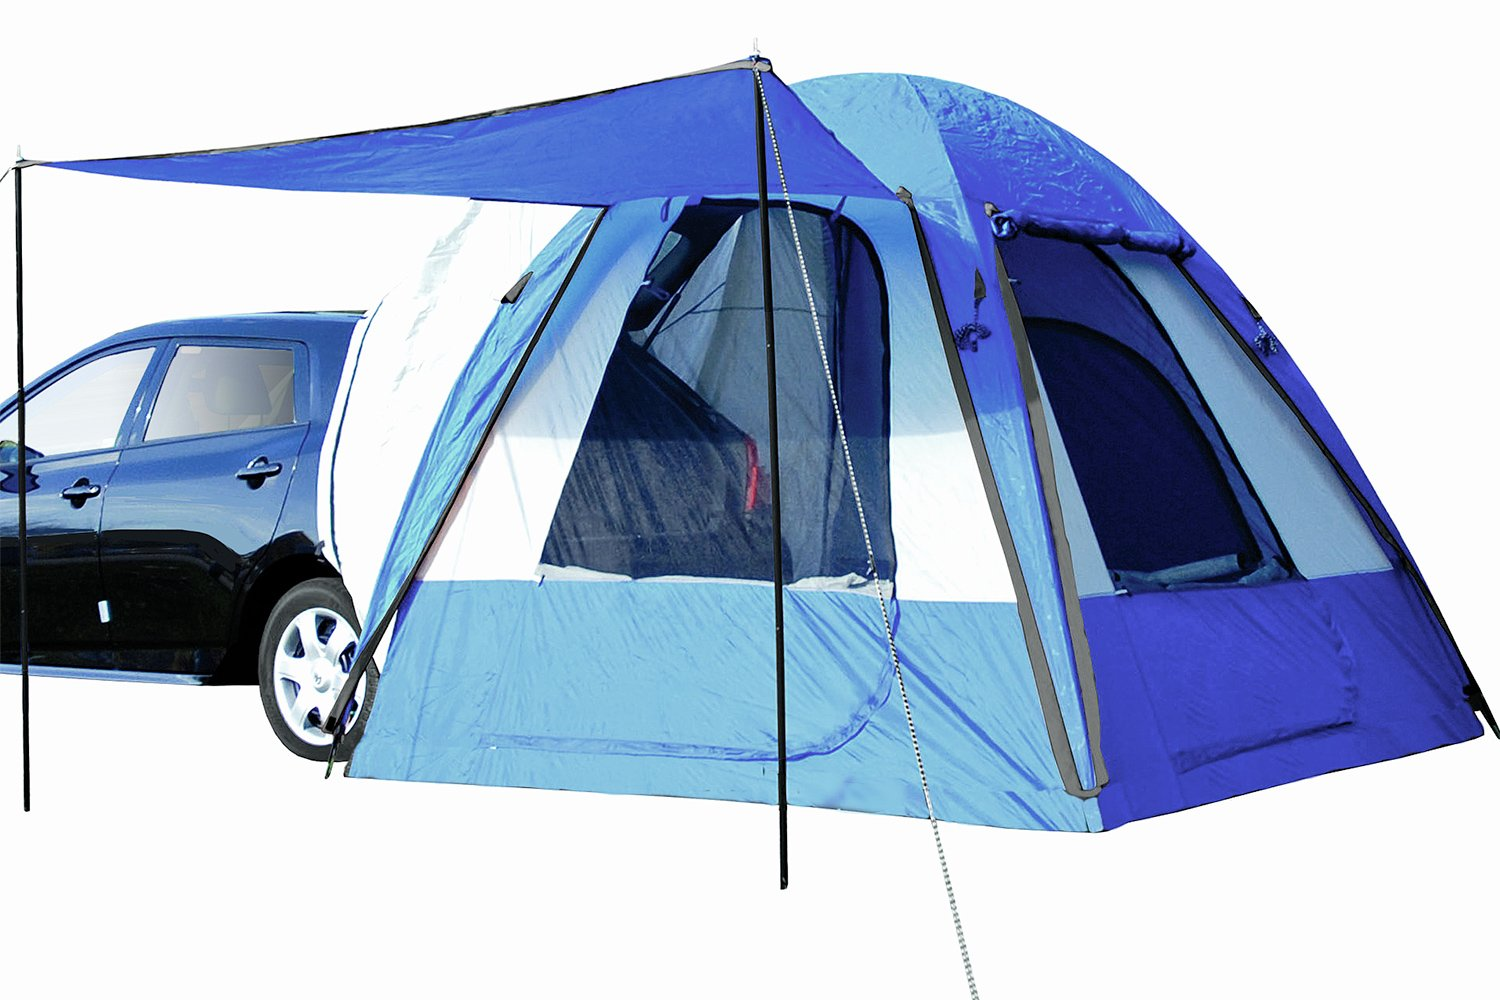 Sportz Dome-To-Go Hatchback Tent  sc 1 st  Auto Accessories Garage & Sportz Dome-To-Go Hatchback Tent - Camping Gear by Napier Ships Free